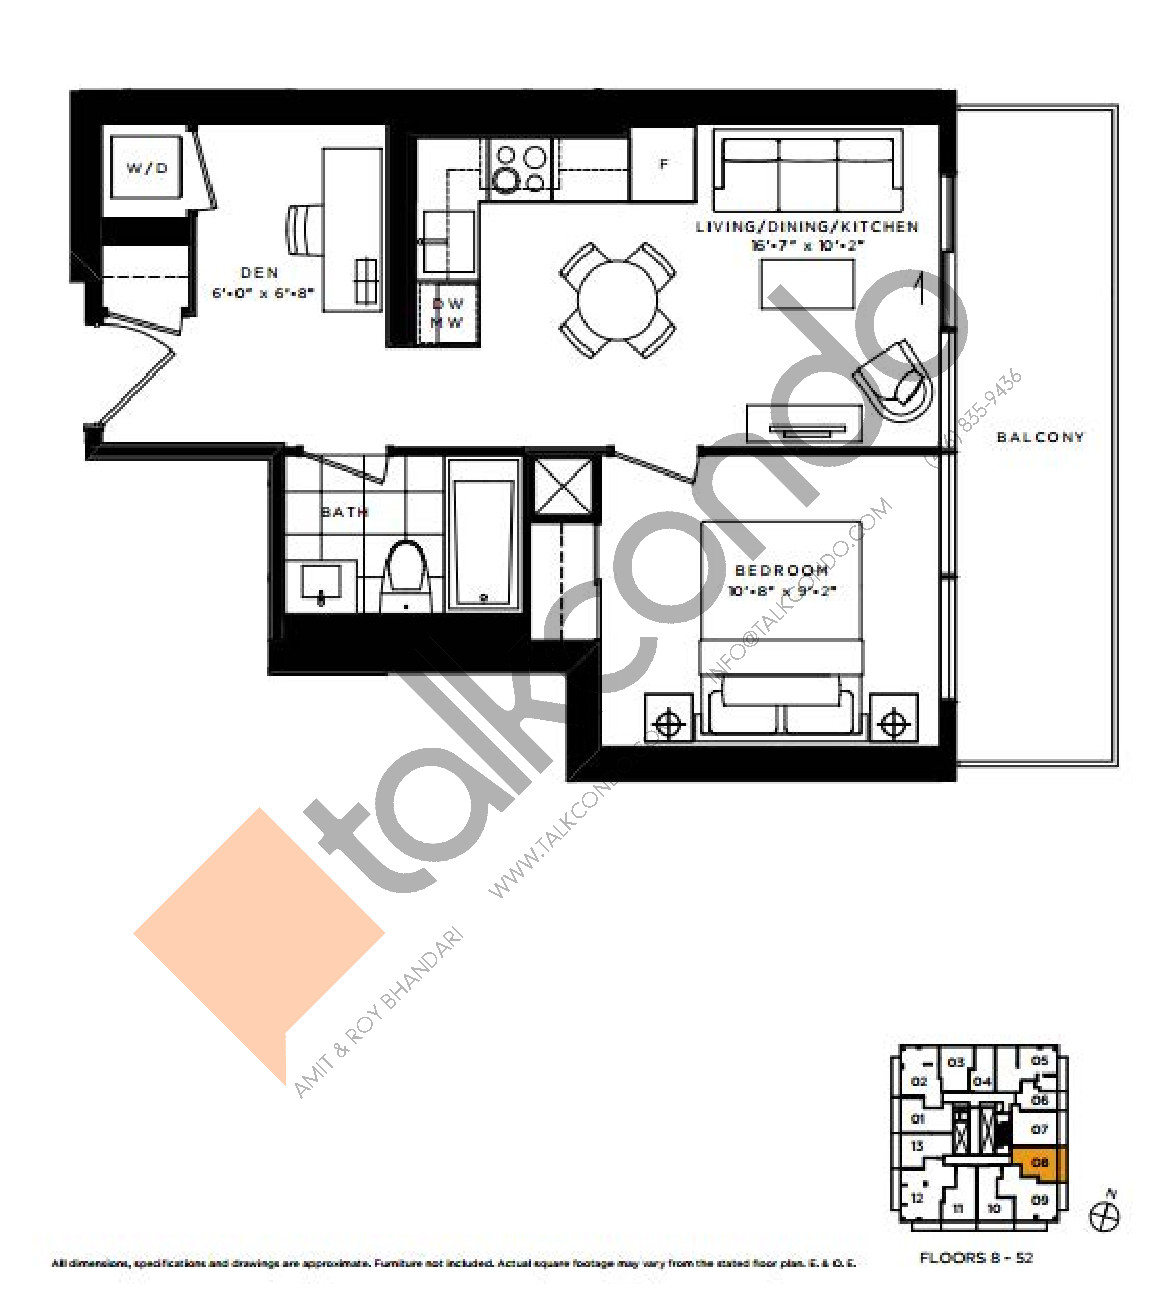 Tiny Home Designs: Floor Plans, Prices, Availability